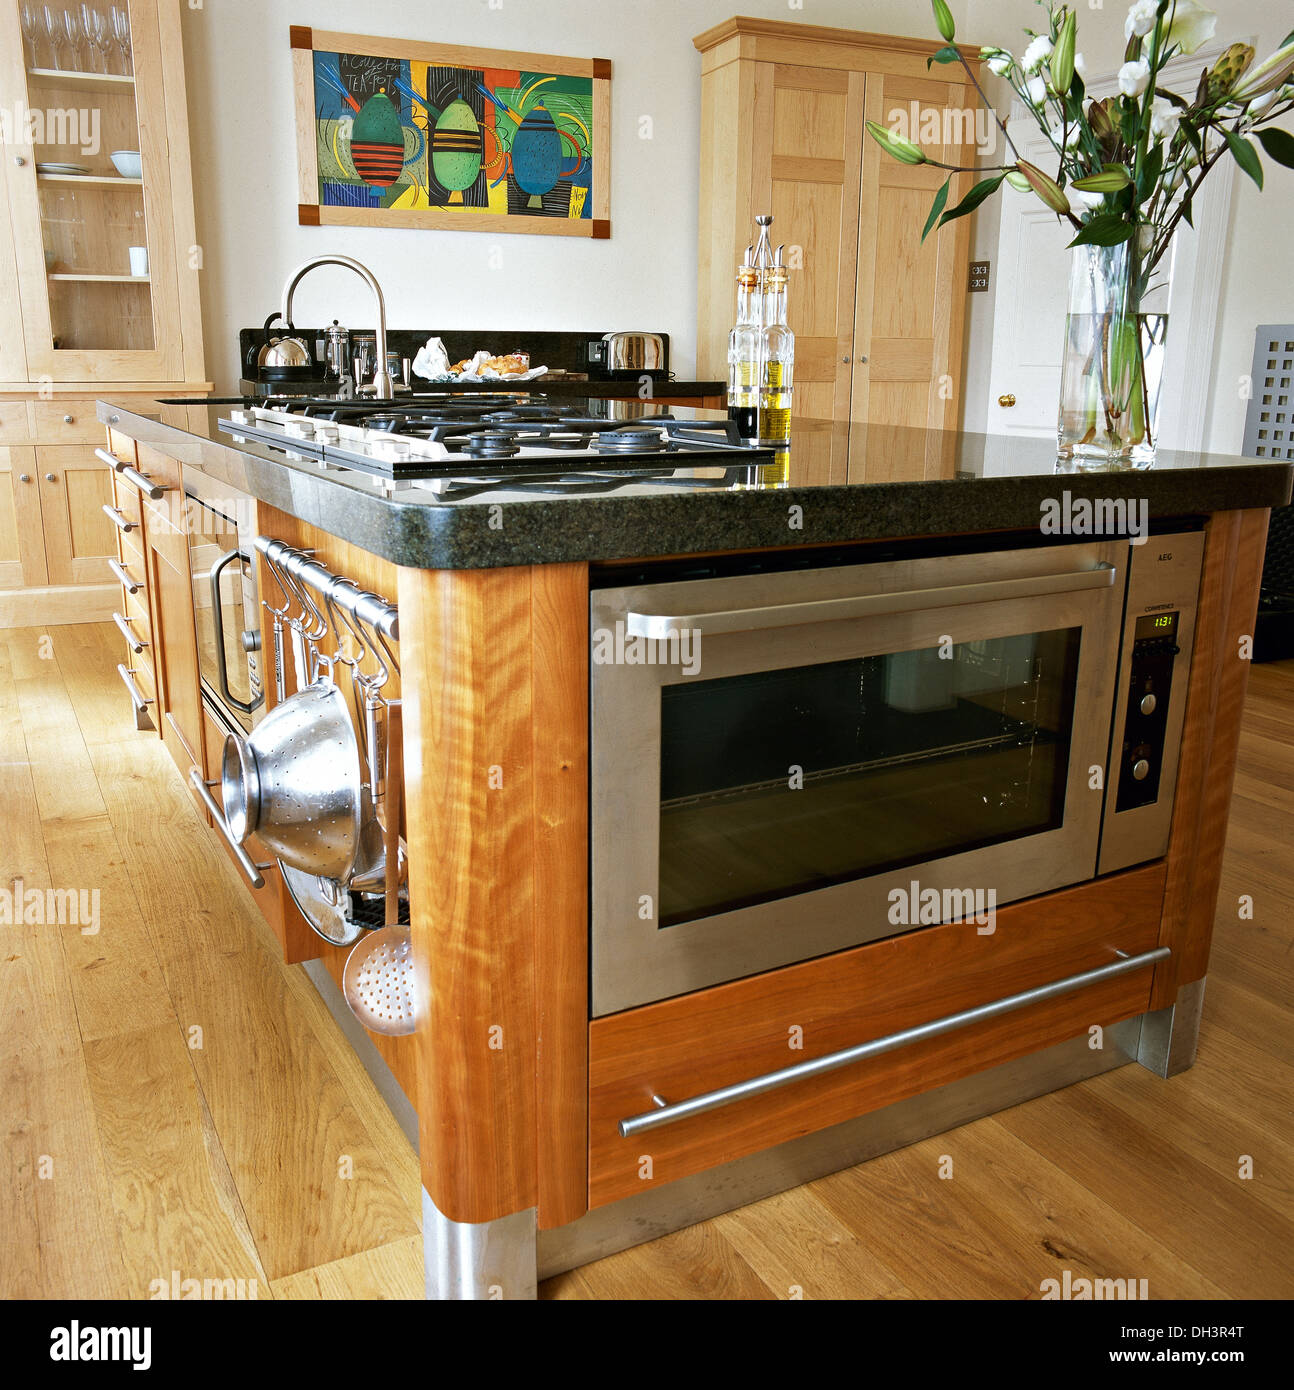 Oven In Island Unit Stainless Steel Oven And Integral Hob In Central Island